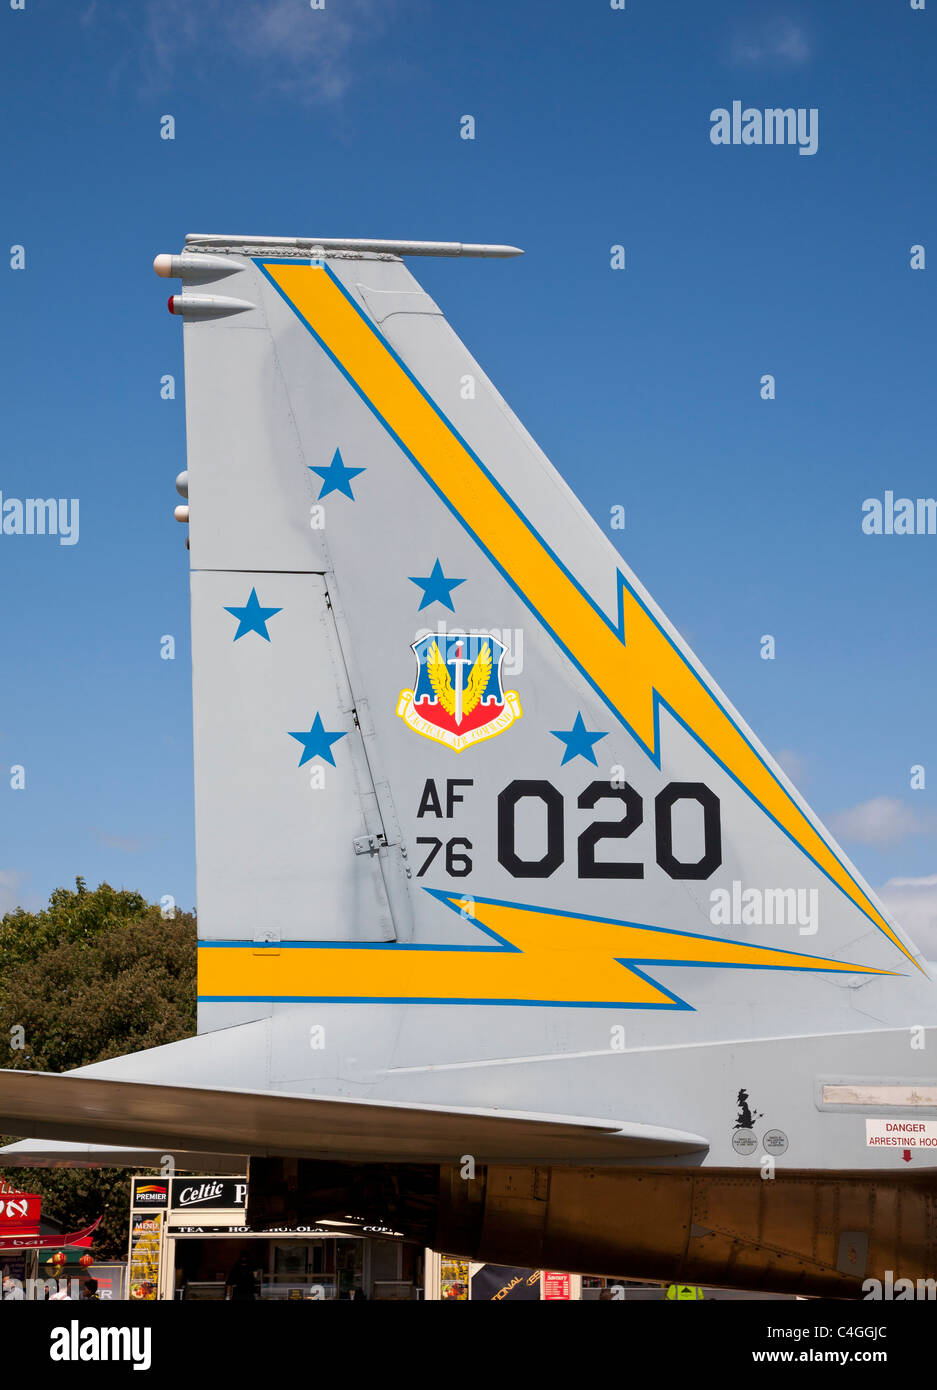 US Air Force F-15 Eagle - Stock Image